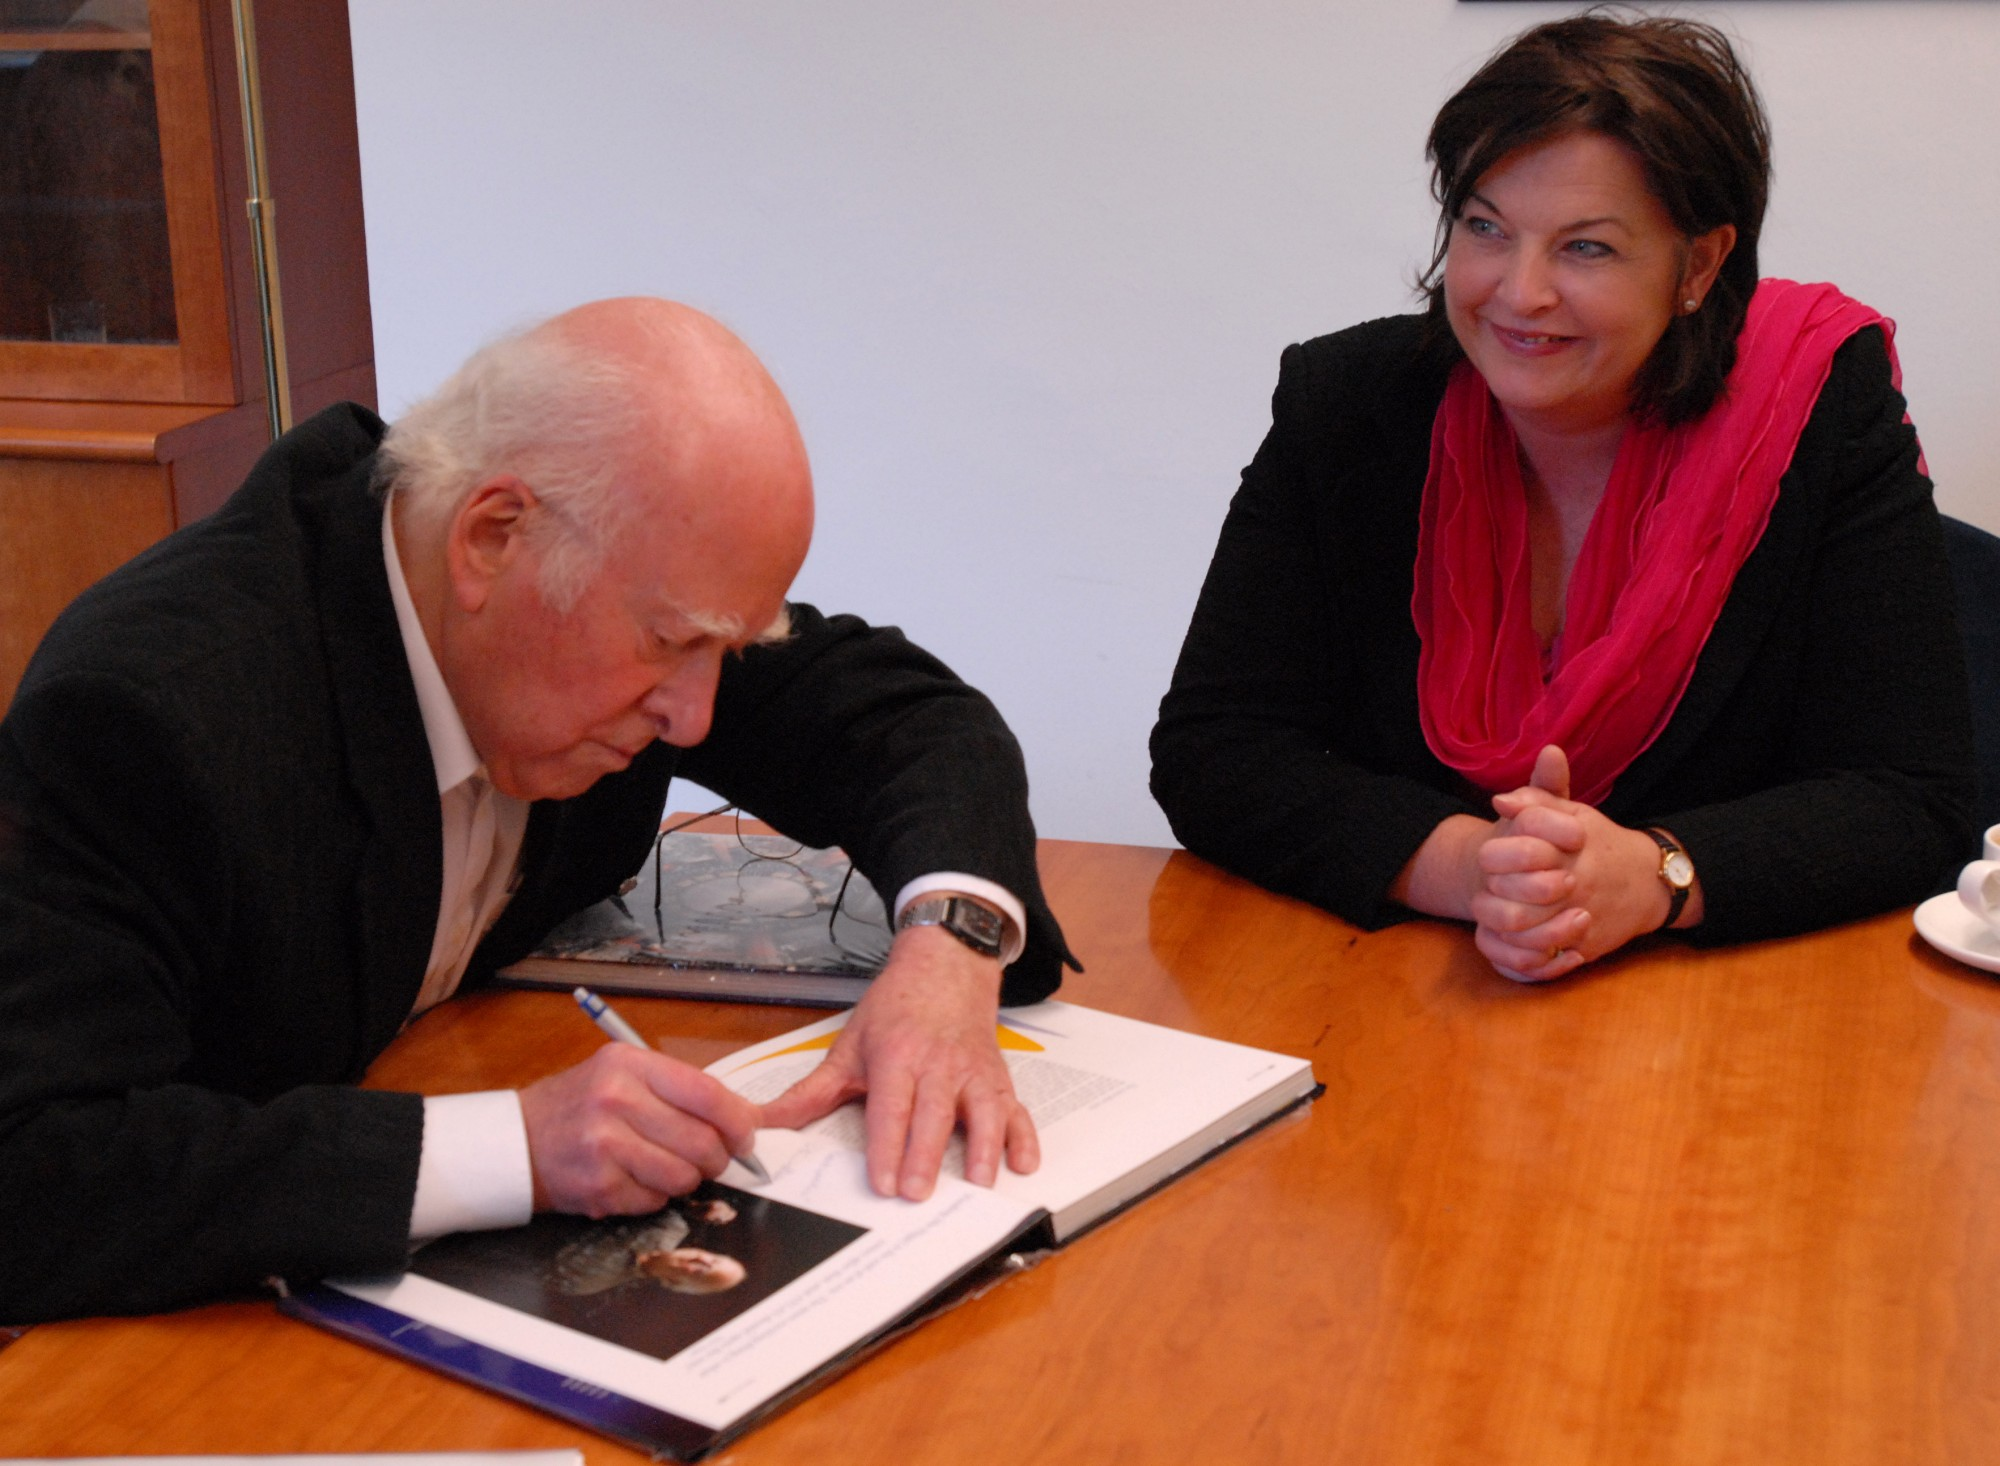 Peter Higgs autographing the ATLAS book 'Exploring the Mystery of Matter' presented to Fiona Hyslop, on the right.